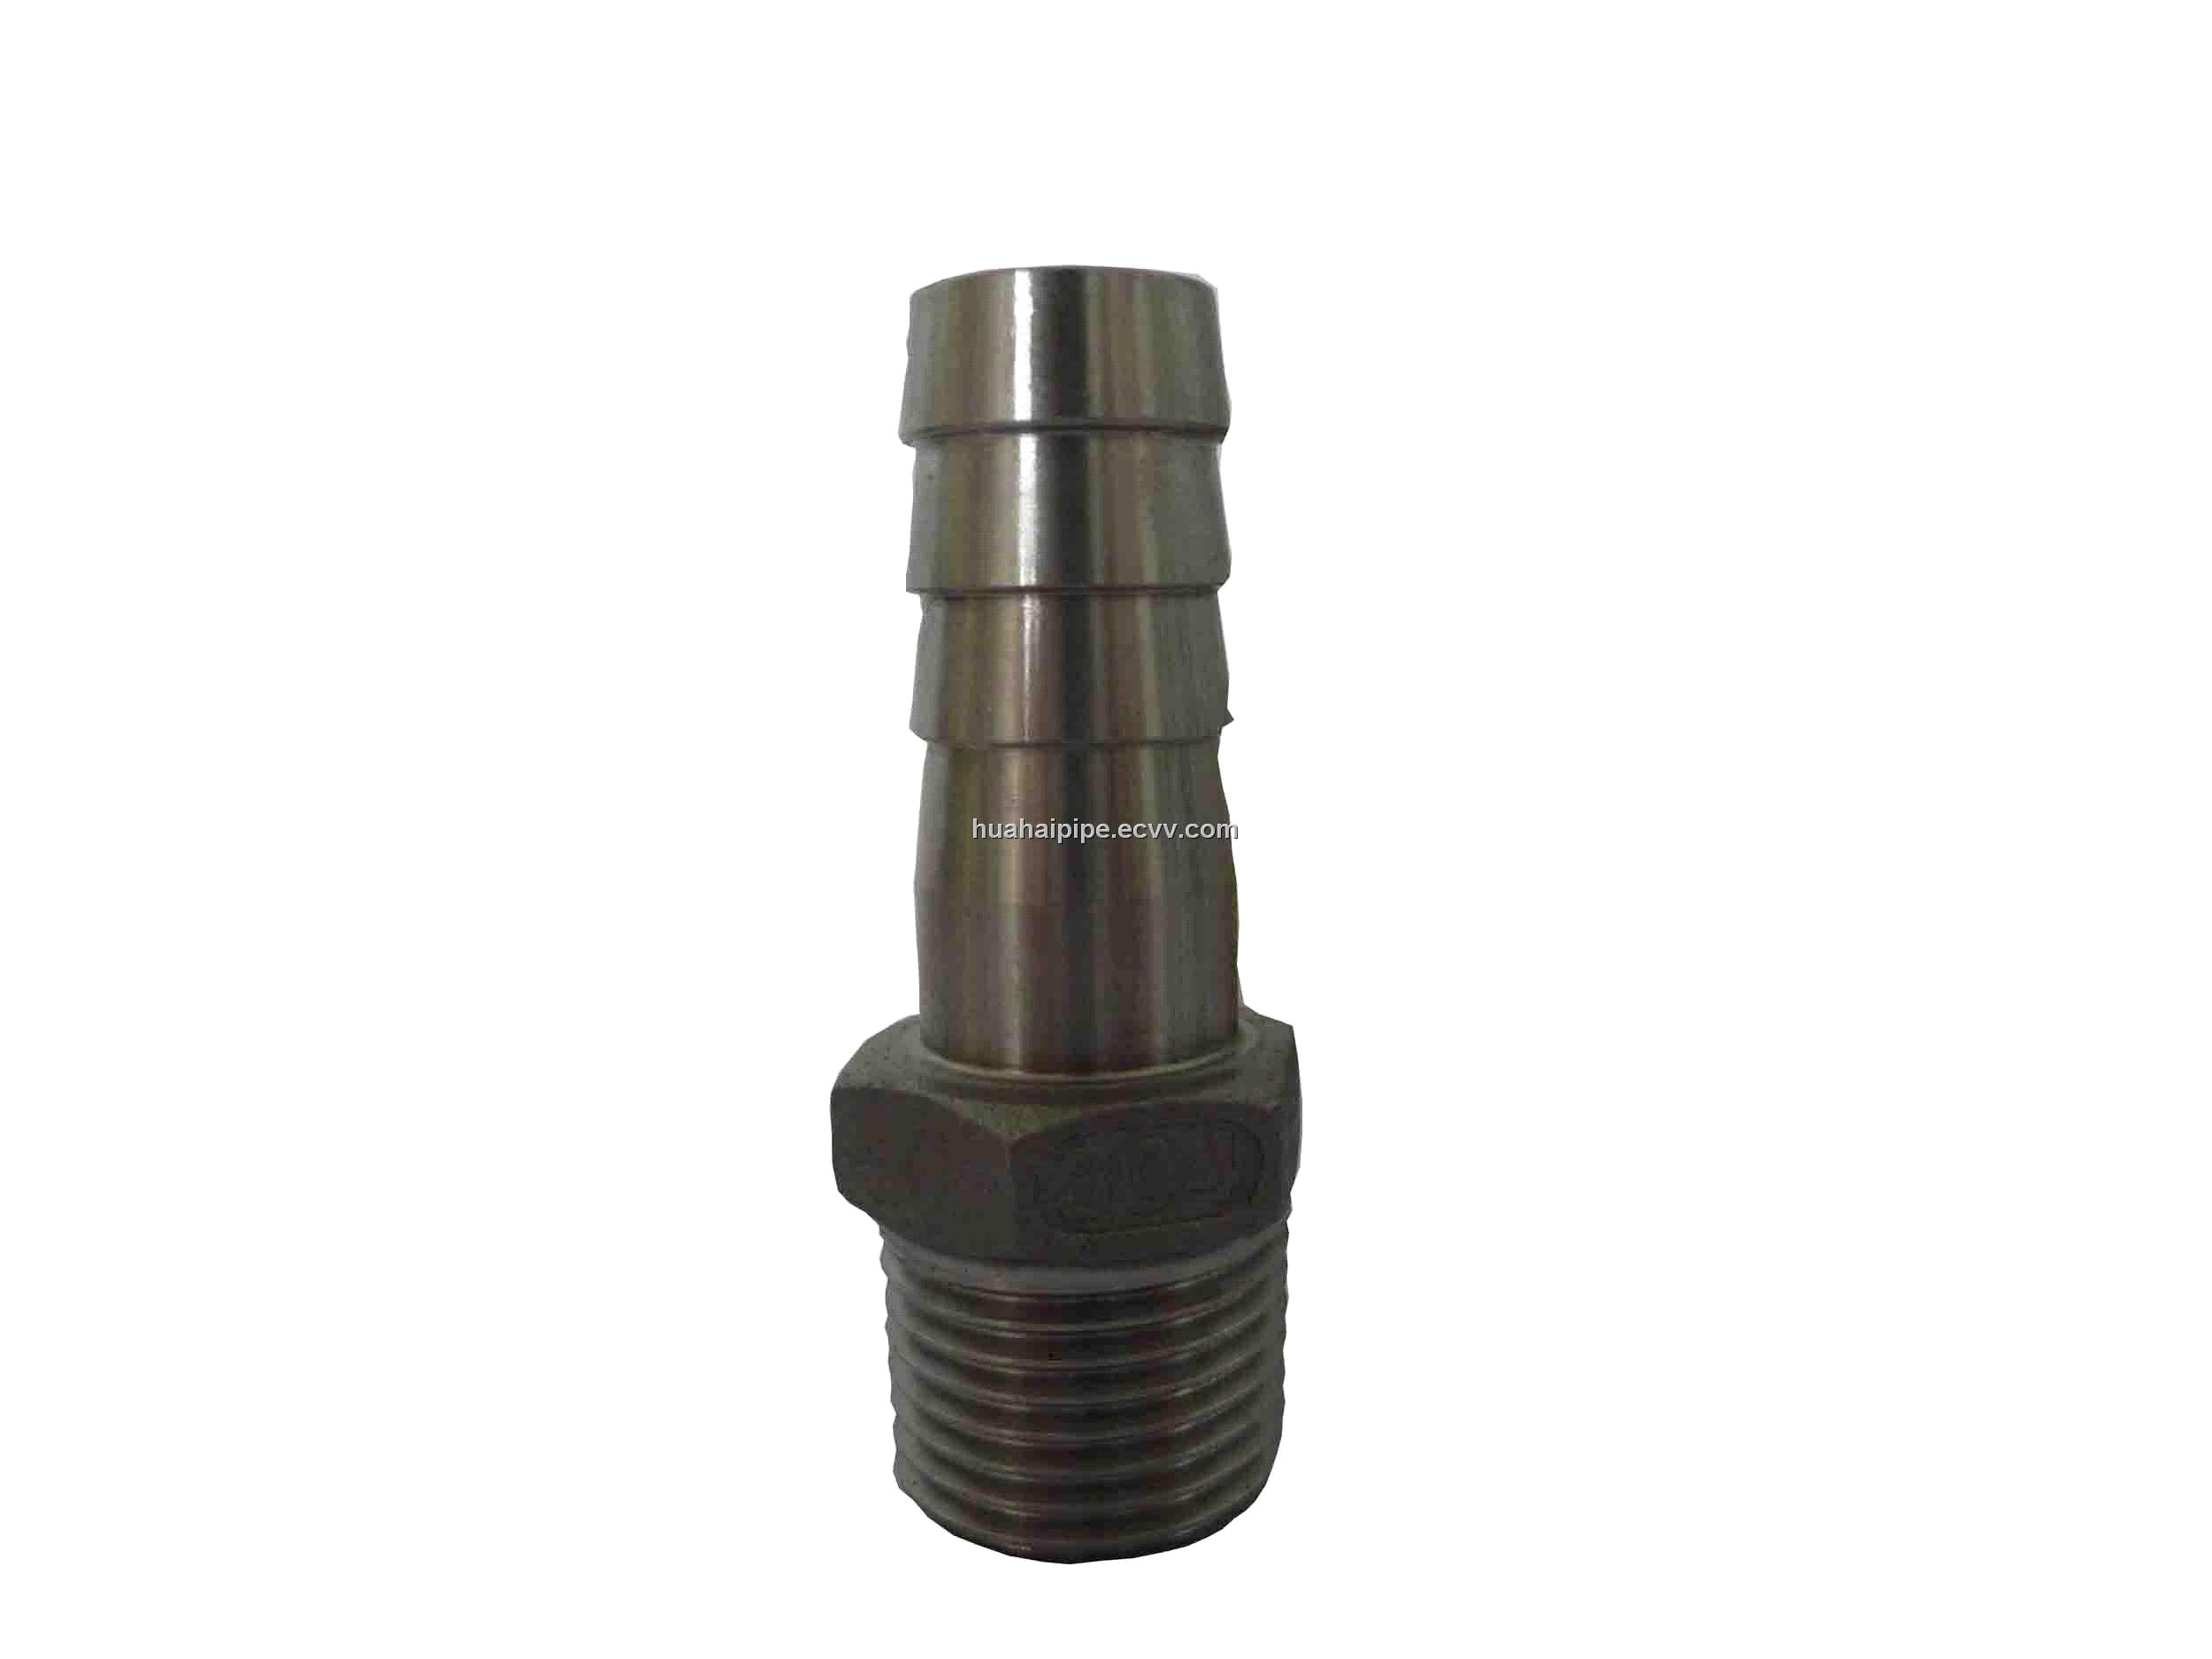 Stainless steel hex hose nipples purchasing souring agent